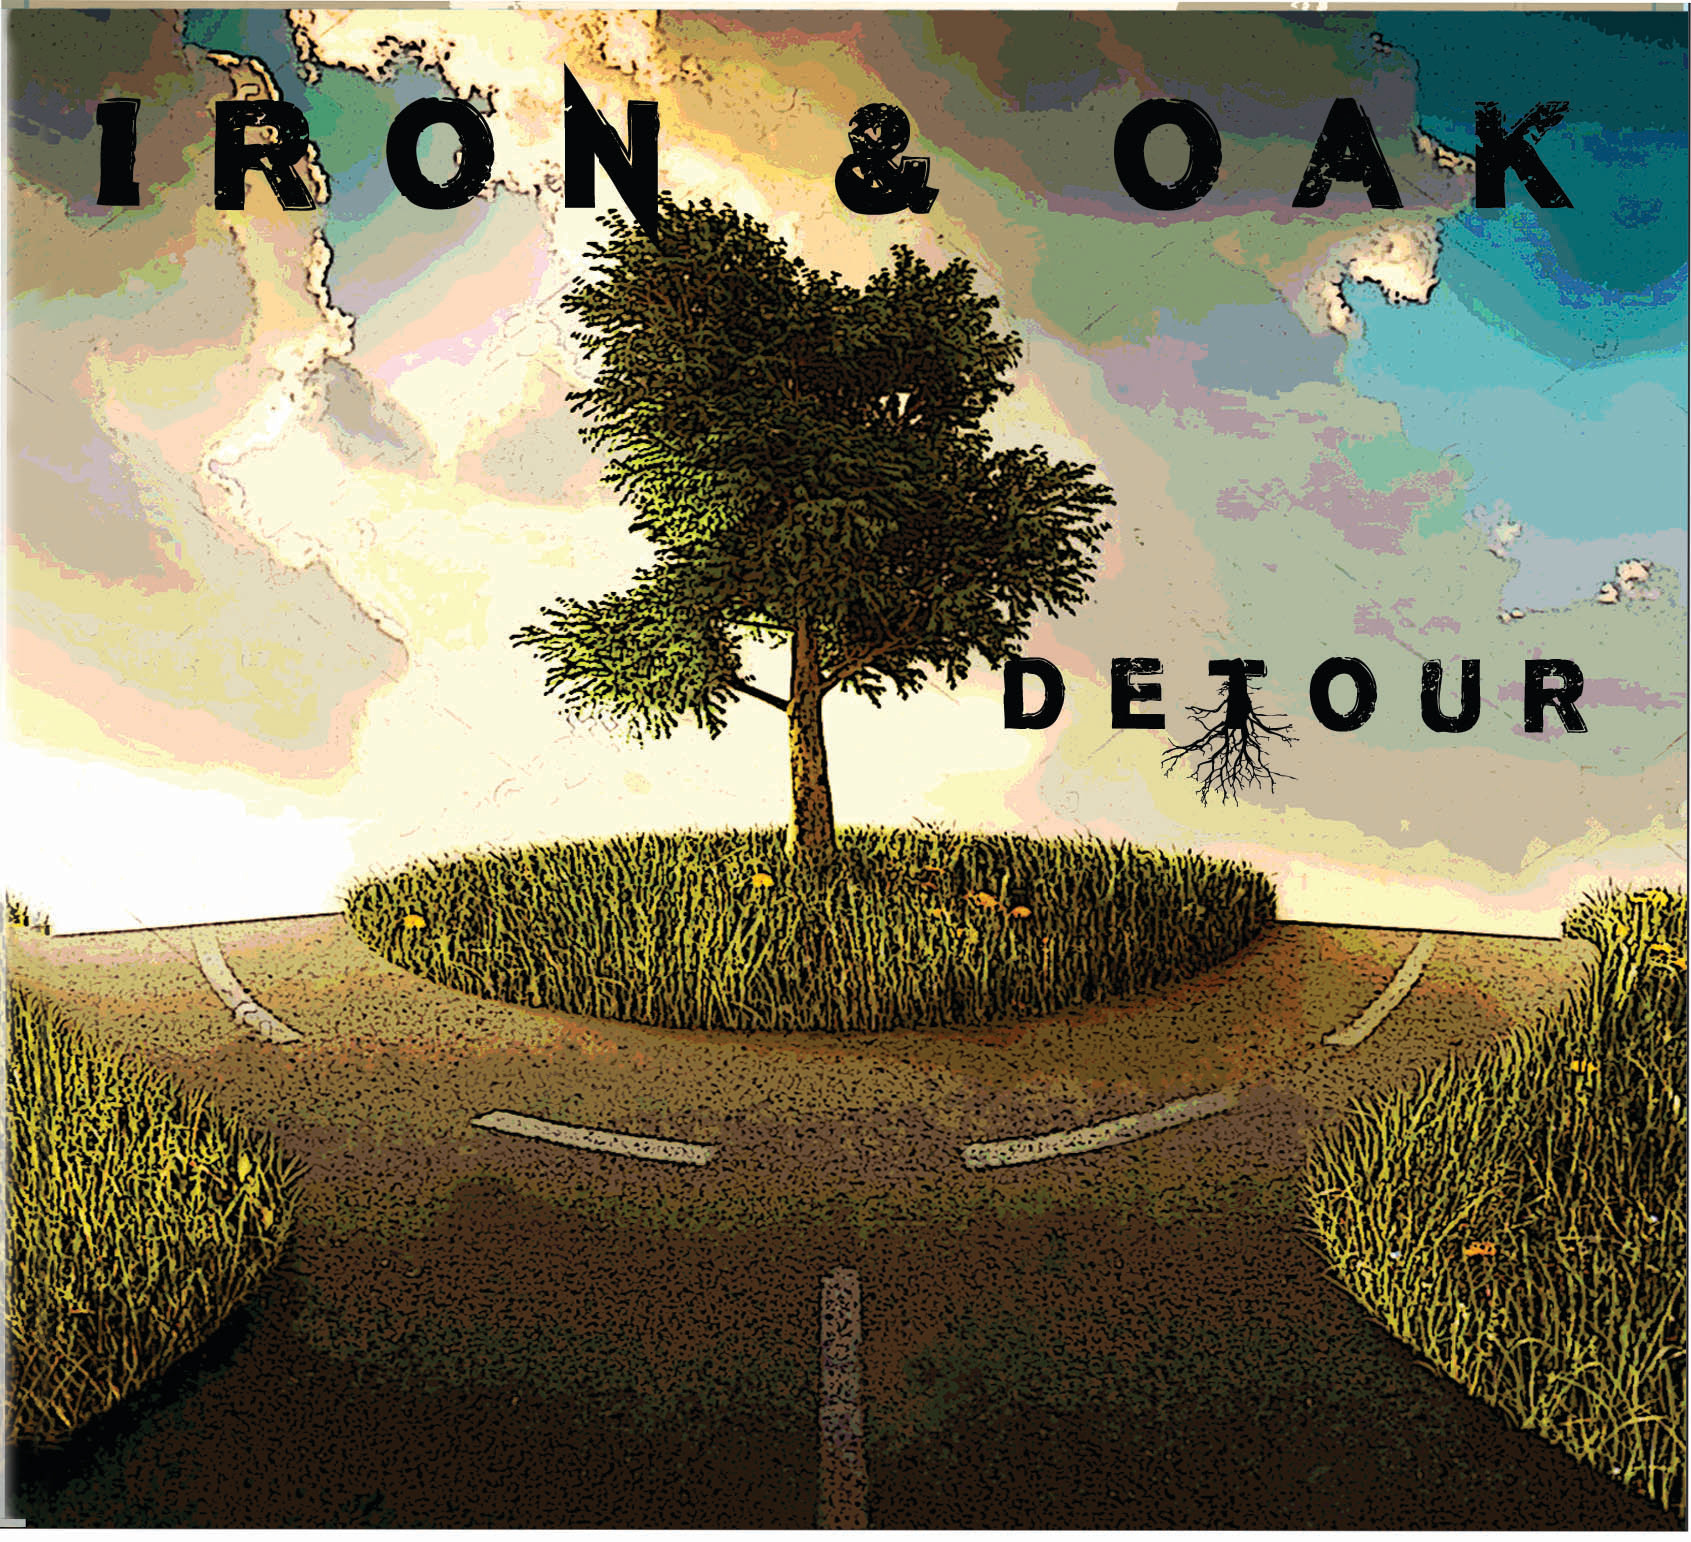 Detour CD Iron & Oak